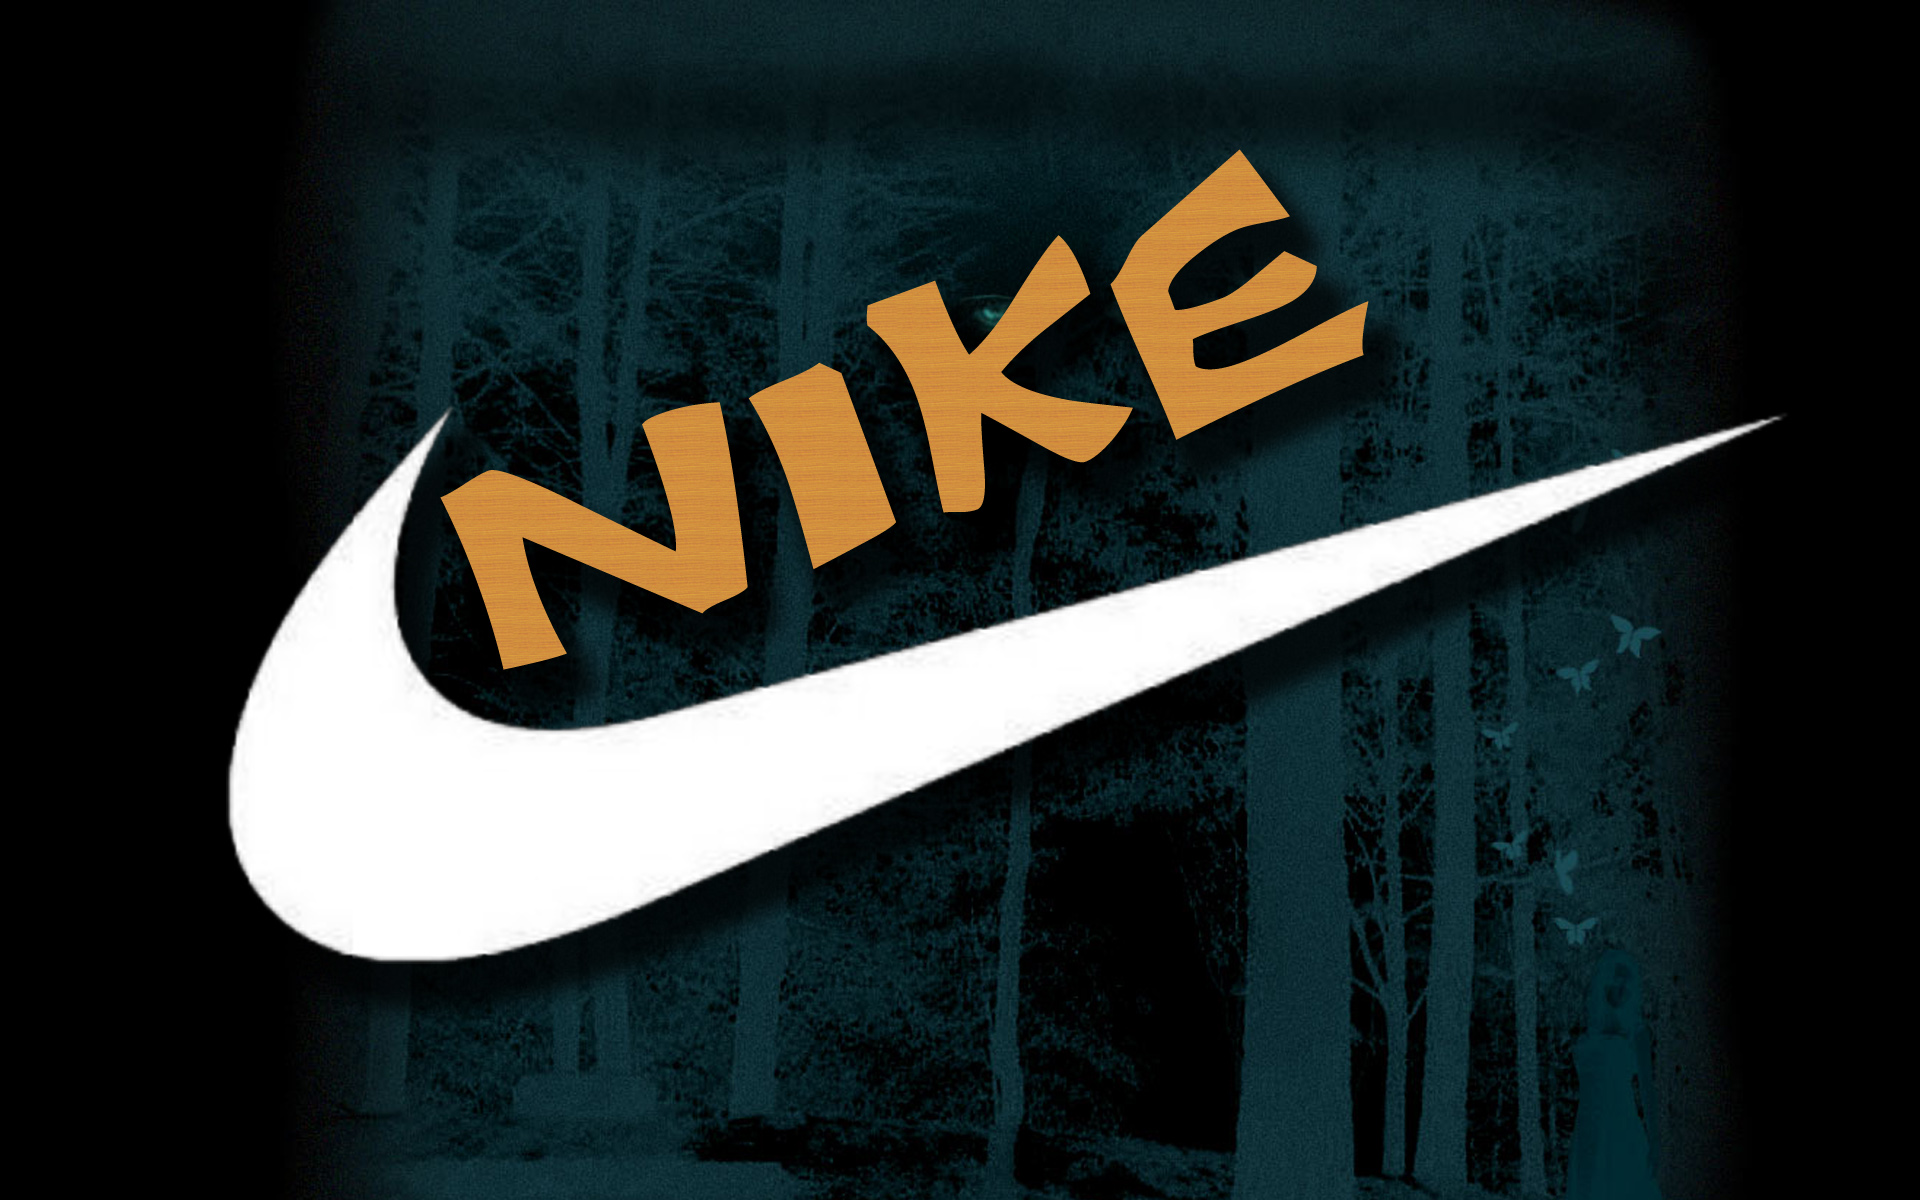 Nike just do it logo iphone wallpaper download roblox -  Nike Logo Cool Hd Wallpaper Download Wallpapers Page